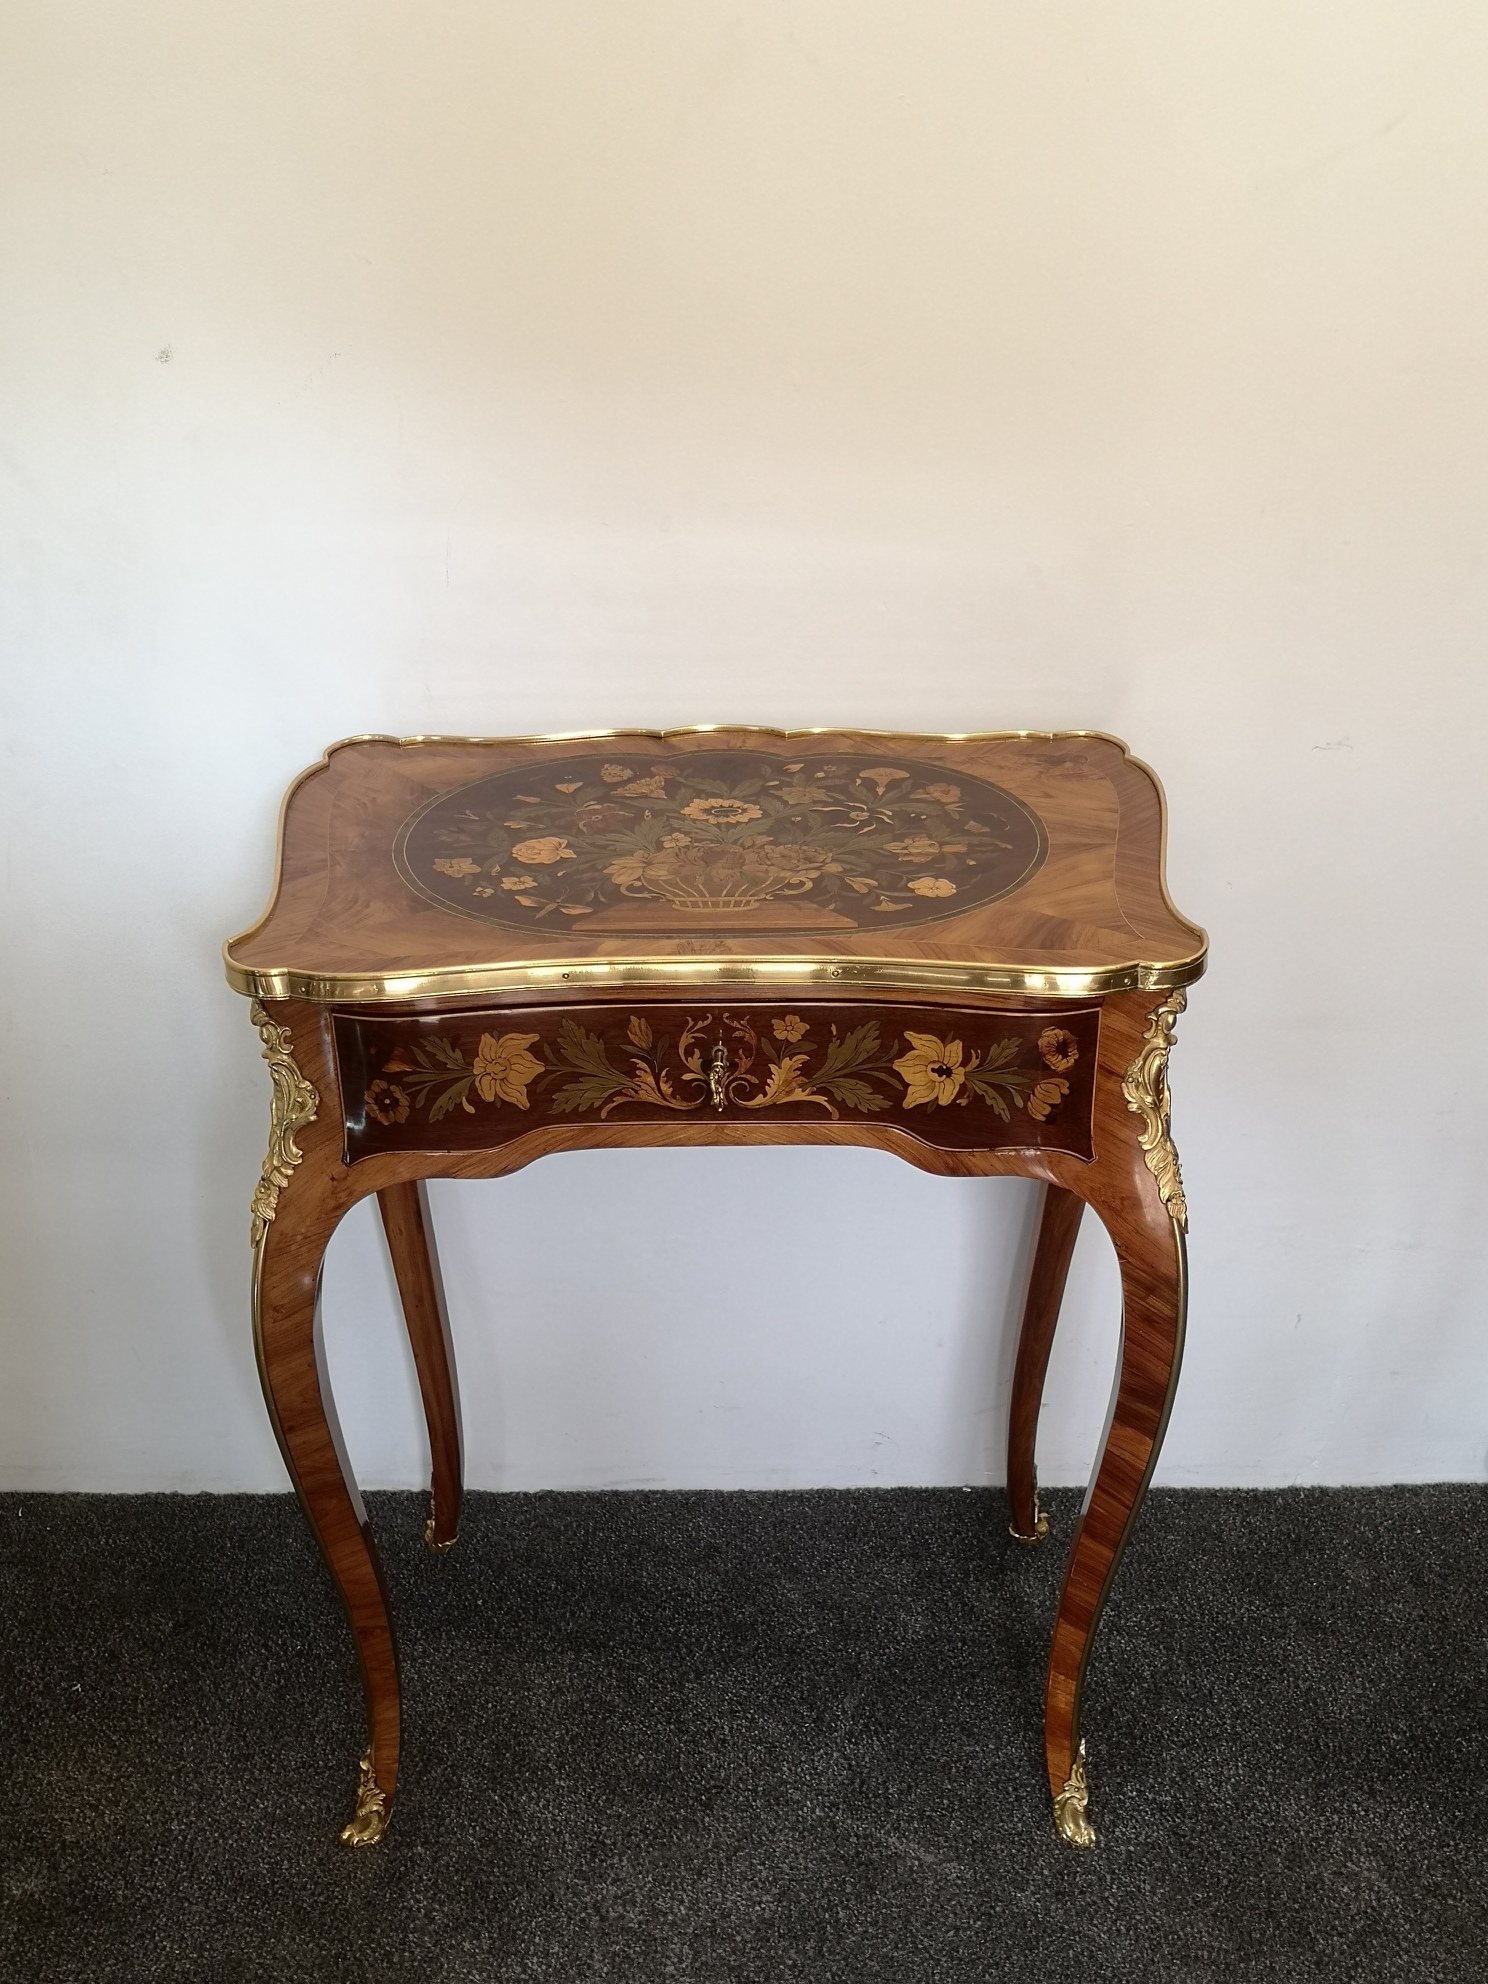 19th Century Kingwood And Marquetry Side Table